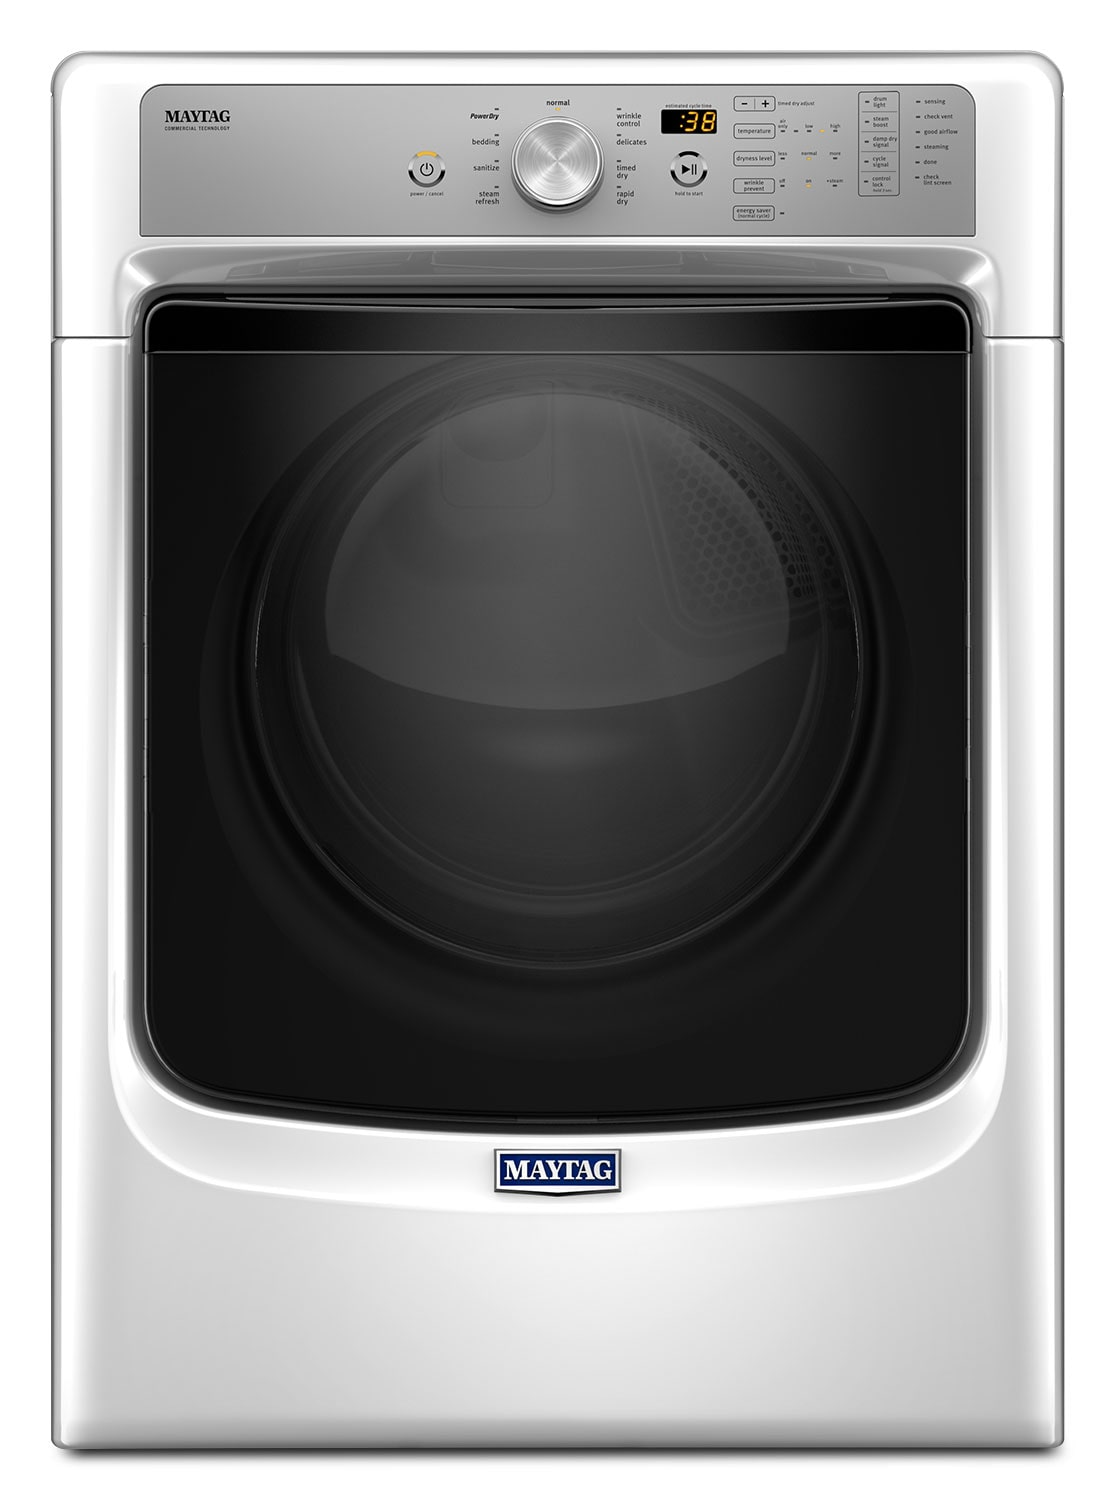 Washers and Dryers - Maytag White Gas Dryer (7.4 Cu. Ft.) - MGD5500FW